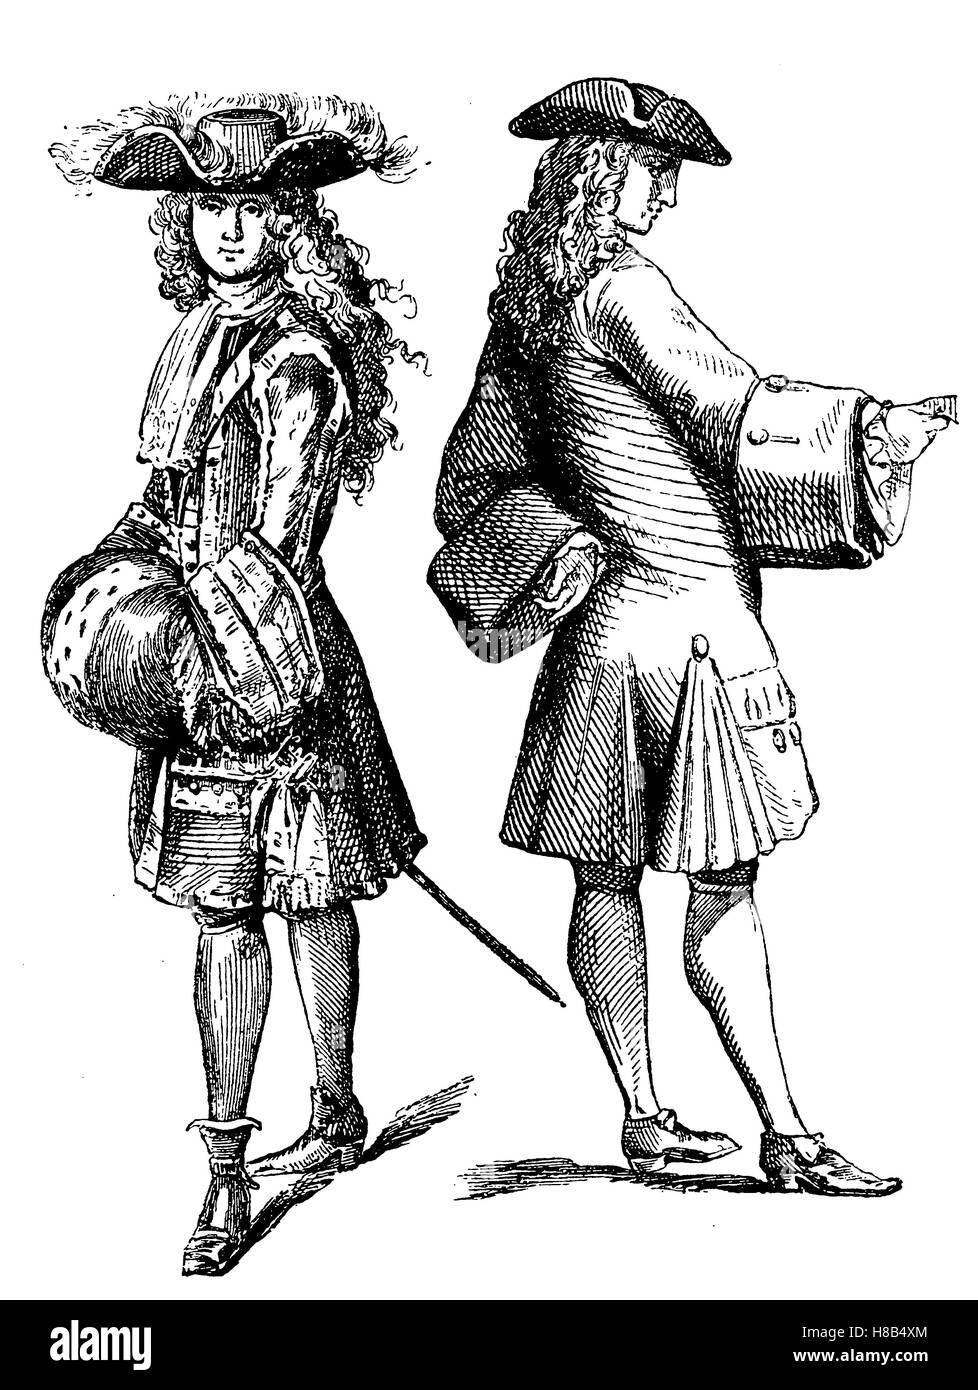 noble costume in the year 1693 (left), burgess costume in the year 1710 (right), france, History of fashion, costume - Stock Image